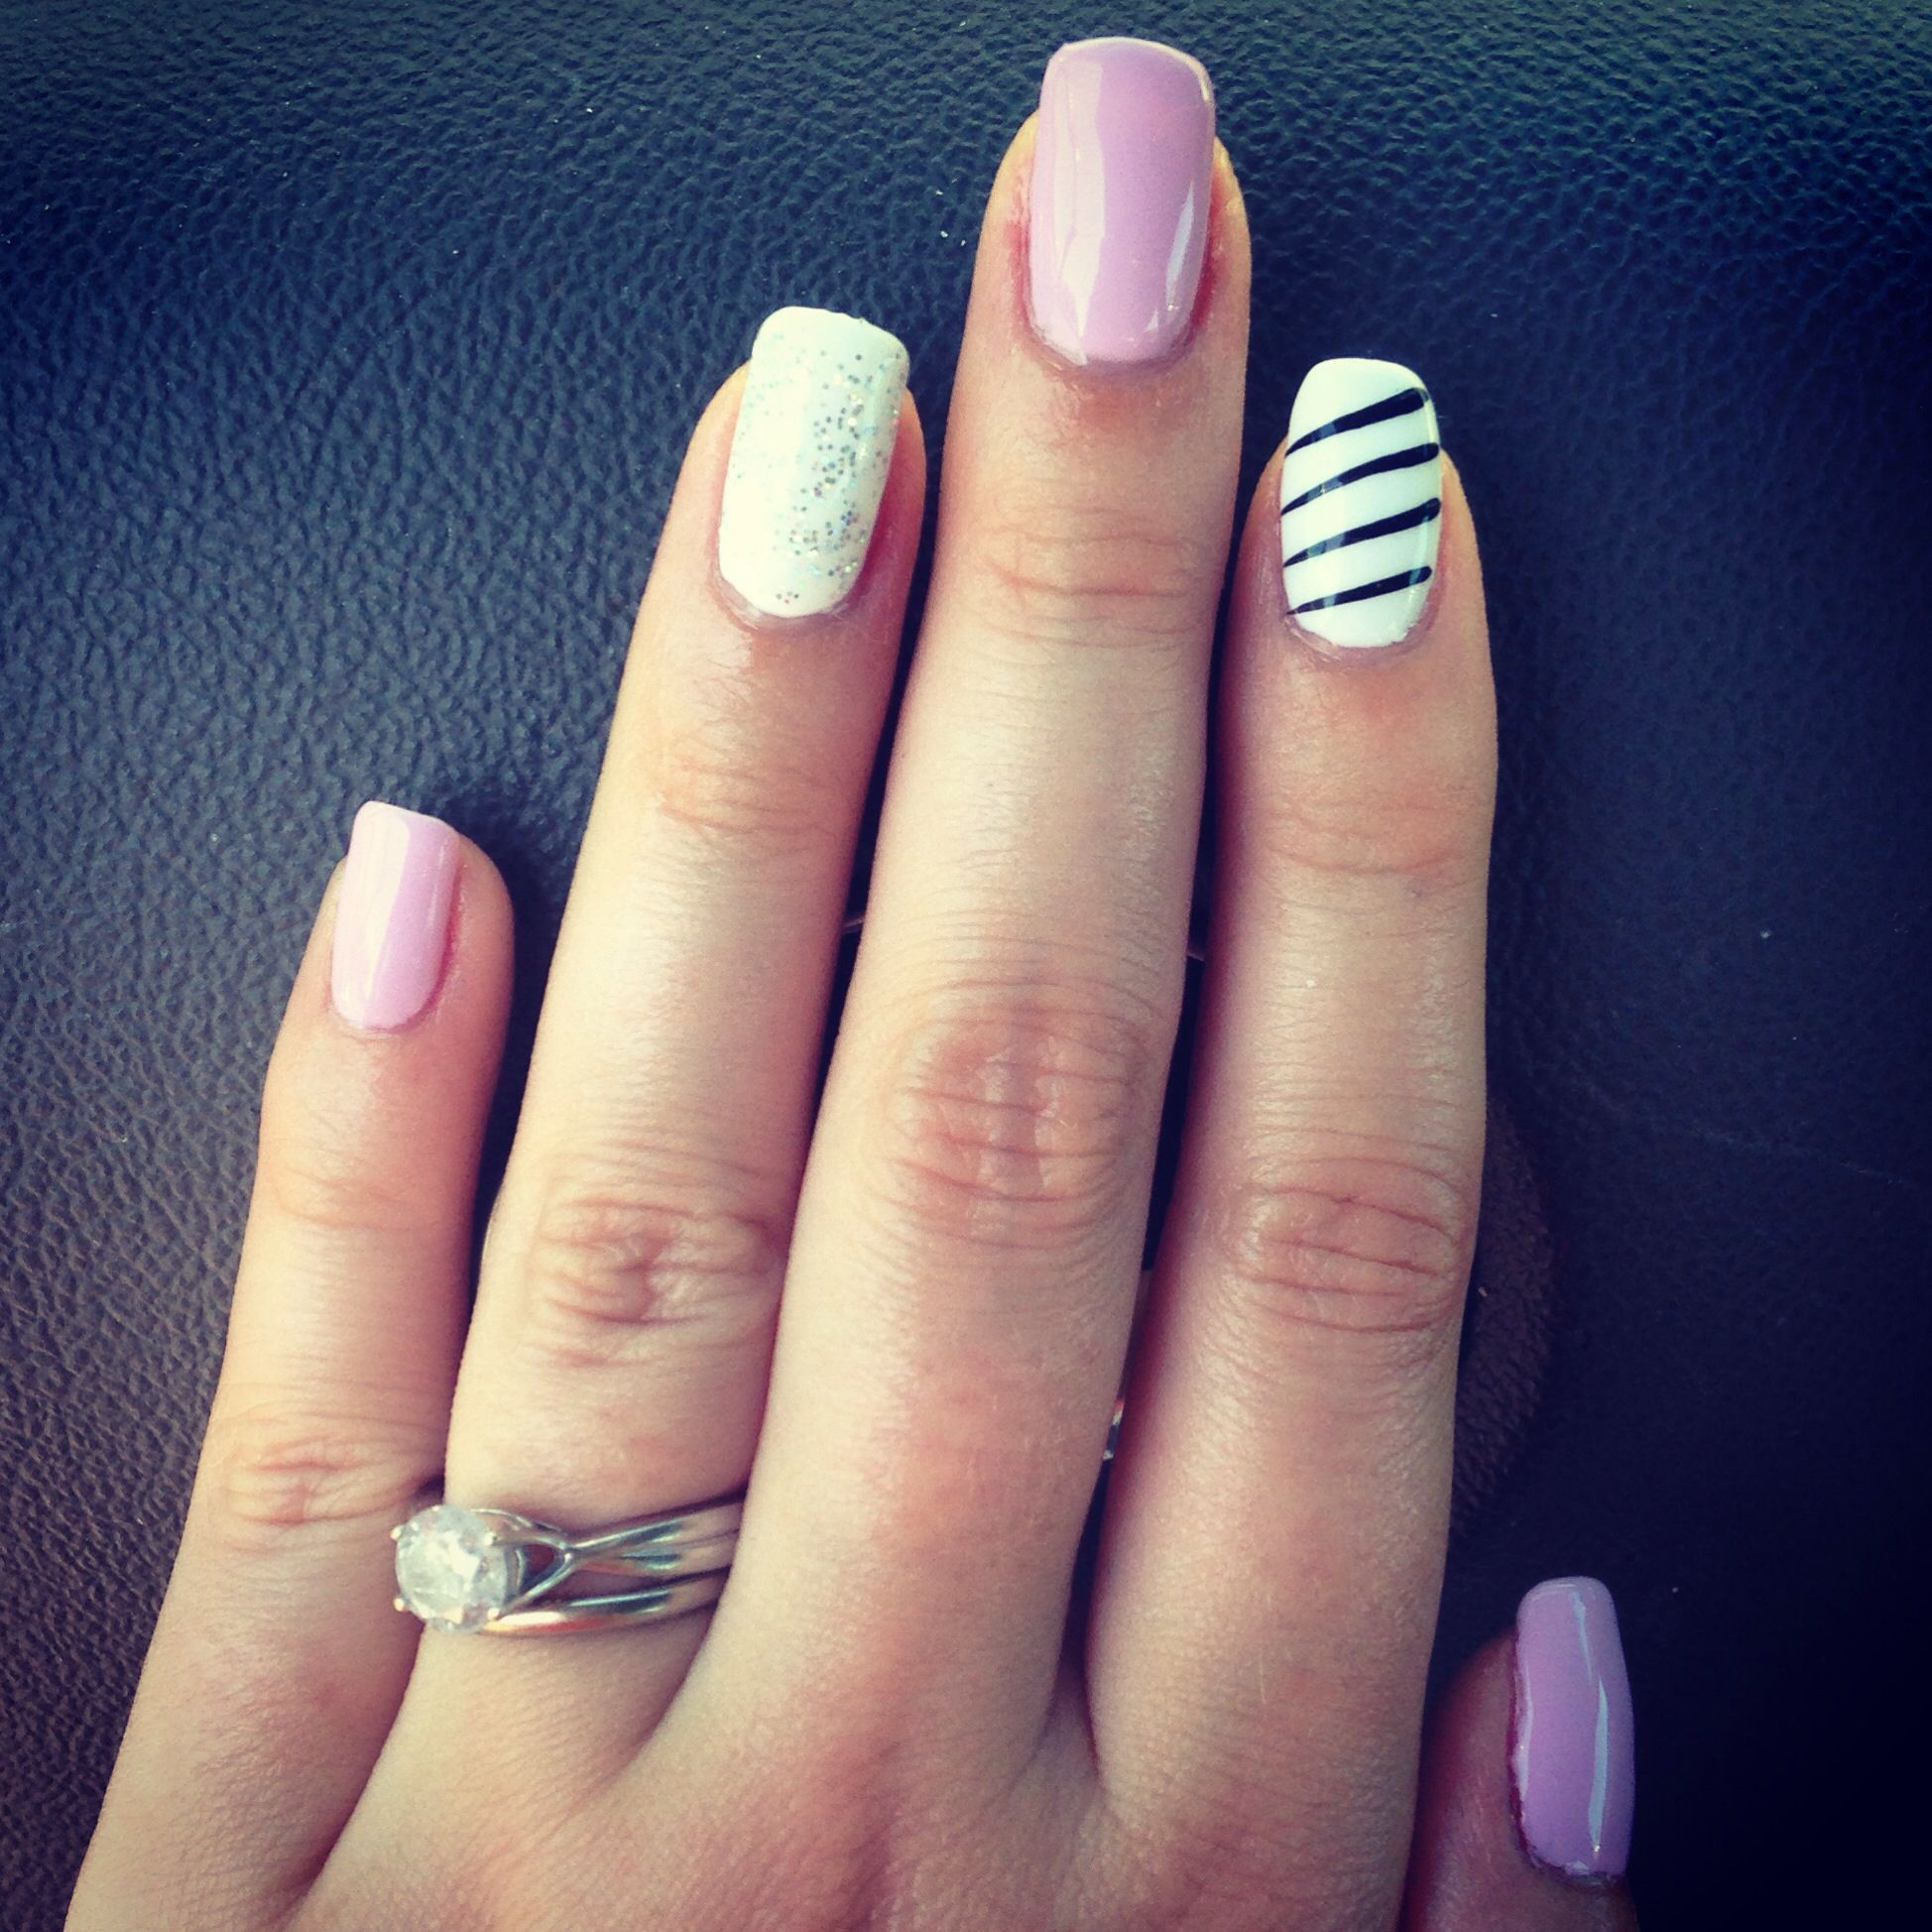 21 Lovely Gel Nails Step By Step Fun New Gel Nail Design Super Cute And Easy D 21 Lovely Gel Nails S In 2020 Cute Easy Nail Designs Cute Gel Nails Fall Gel Nails